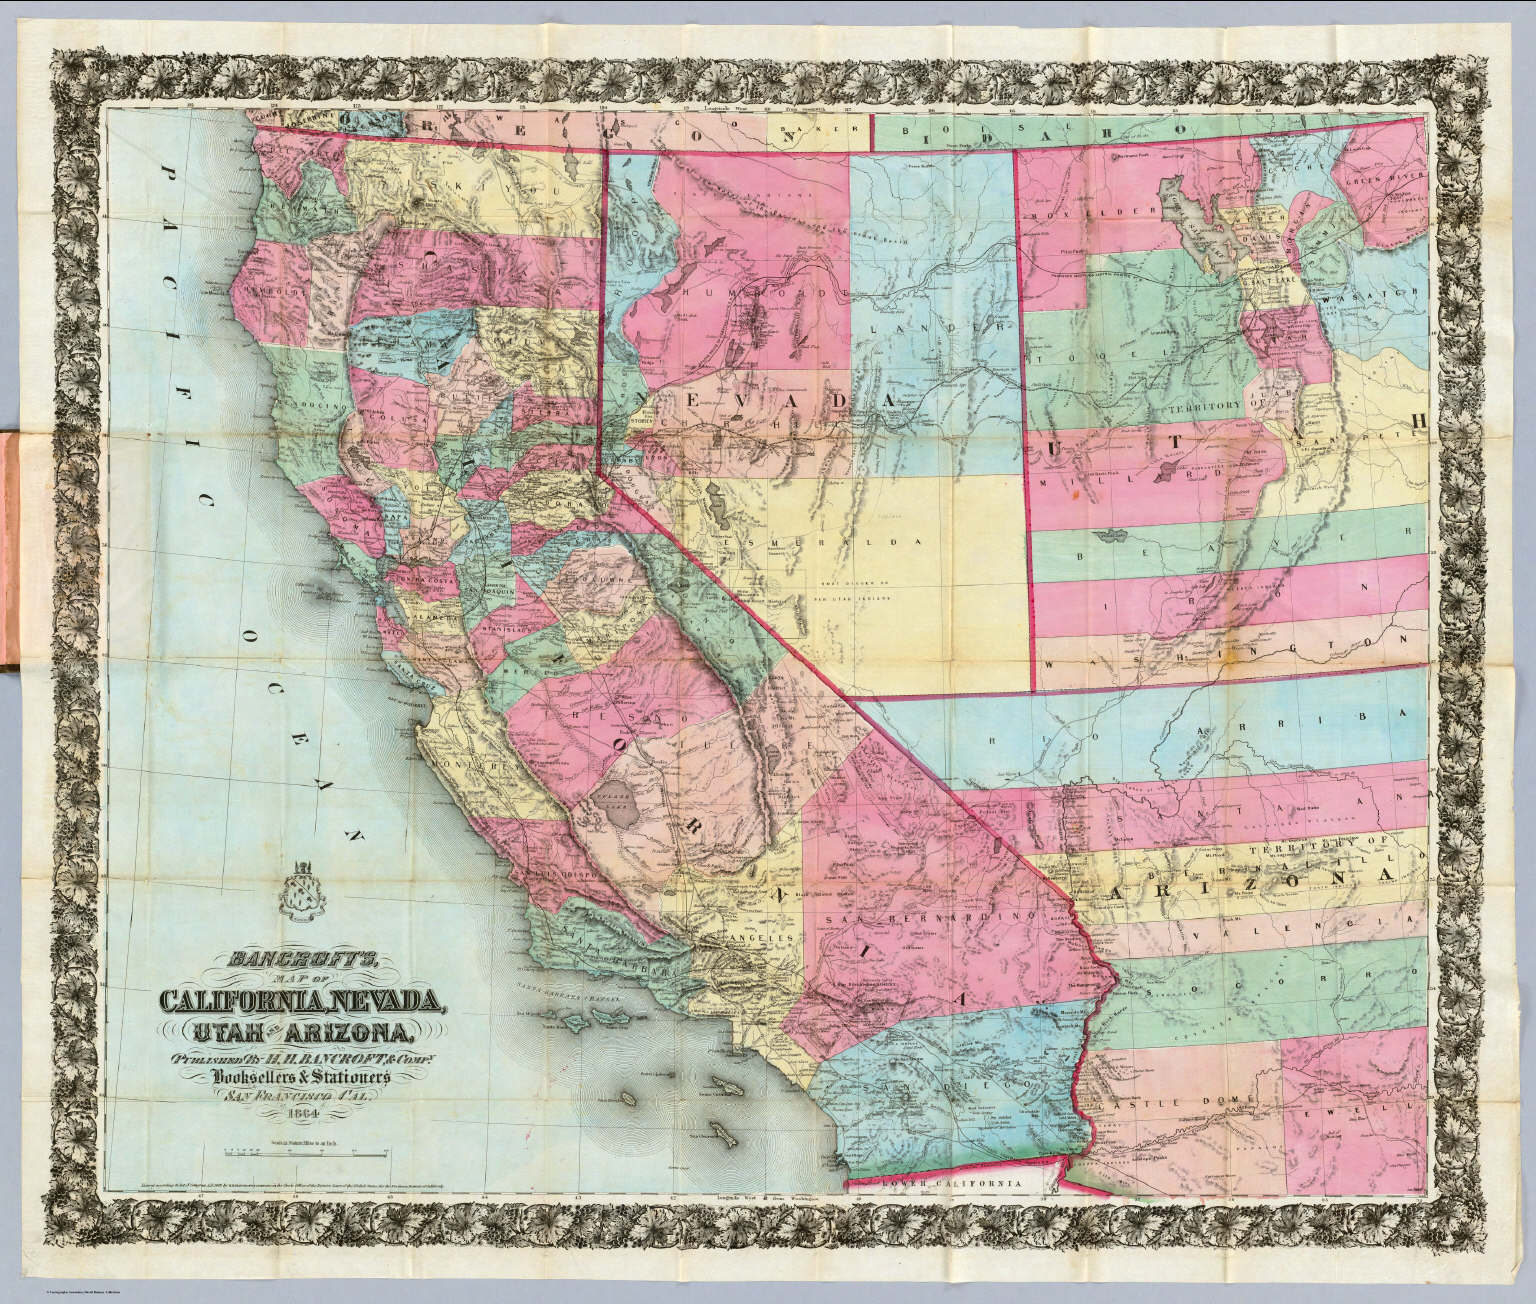 Map Of Arizona Nevada.Bancroft S Map Of California Nevada Utah And Arizona Bancroft